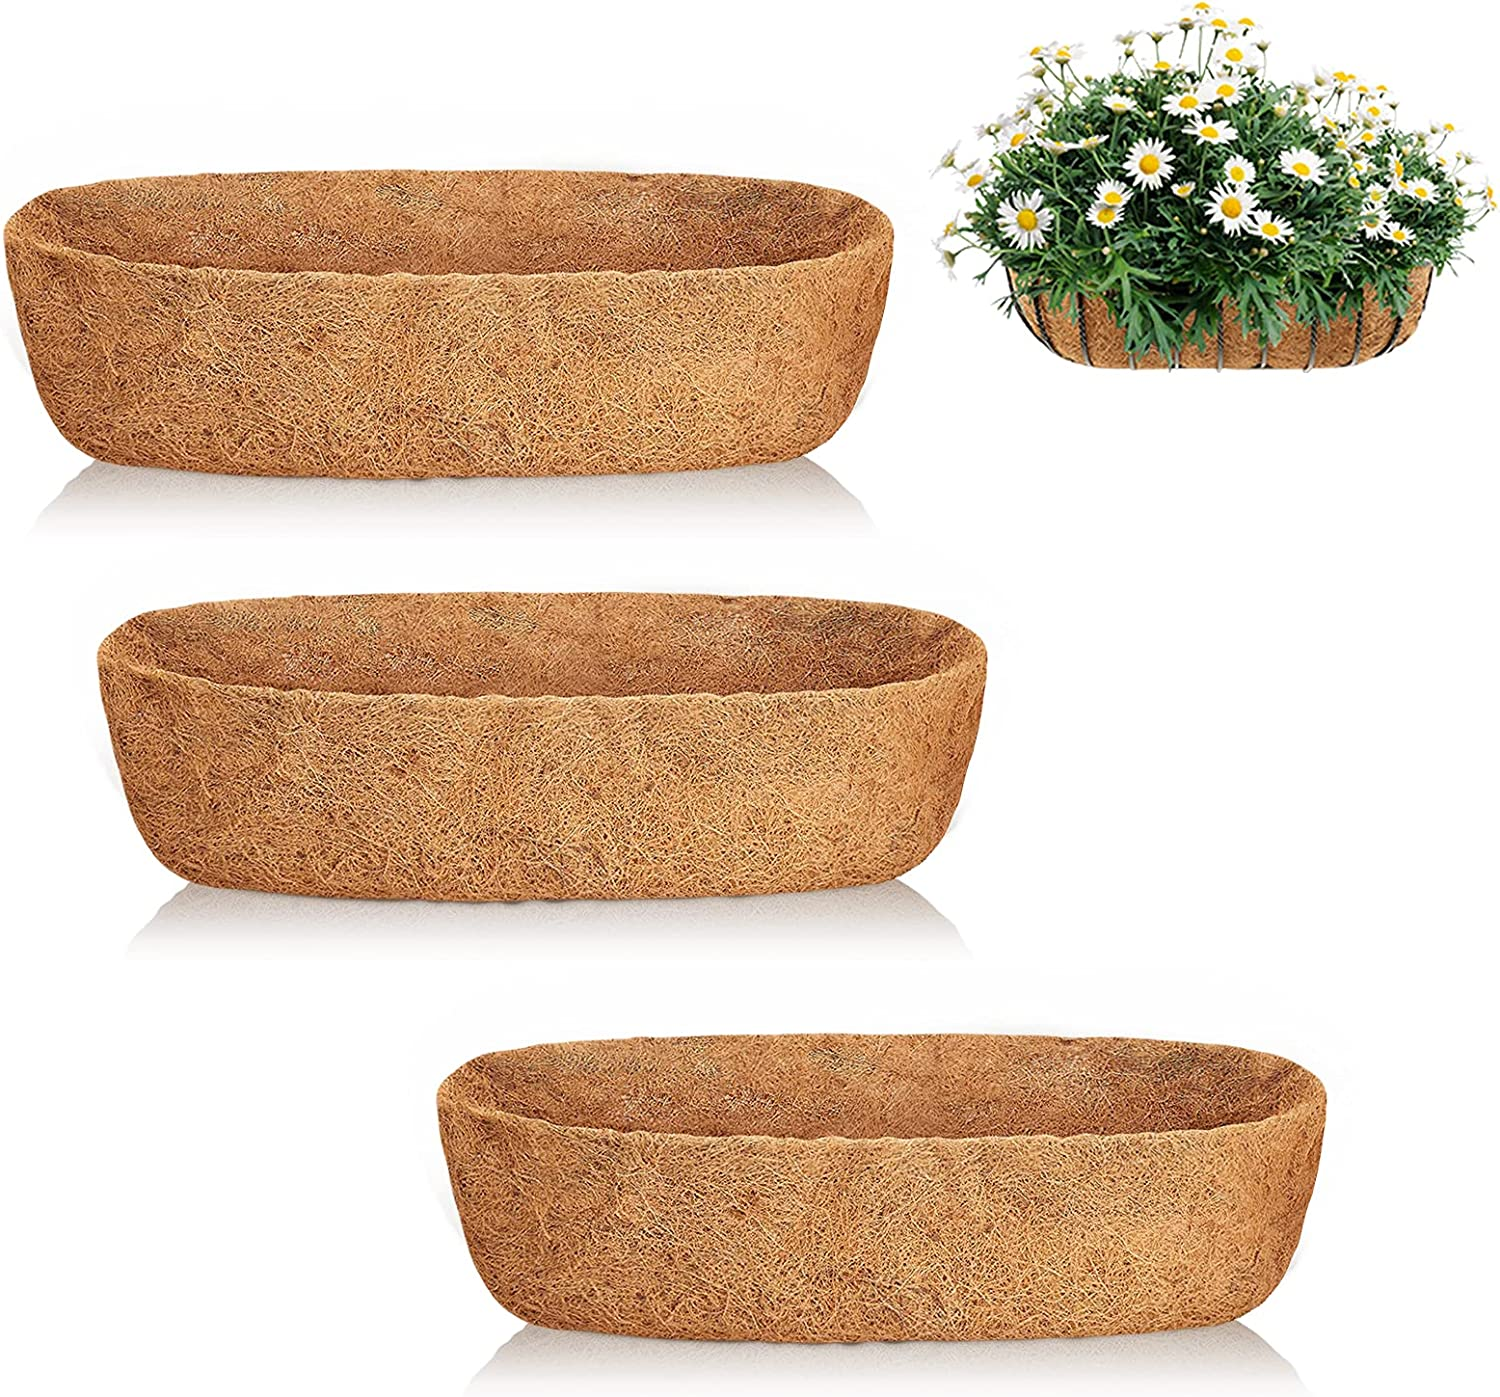 JISON21 Coco Fiber Liners Inventory cleanup selling sale for Planters Coconut Co - Limited time free shipping 48 3PCS Inch